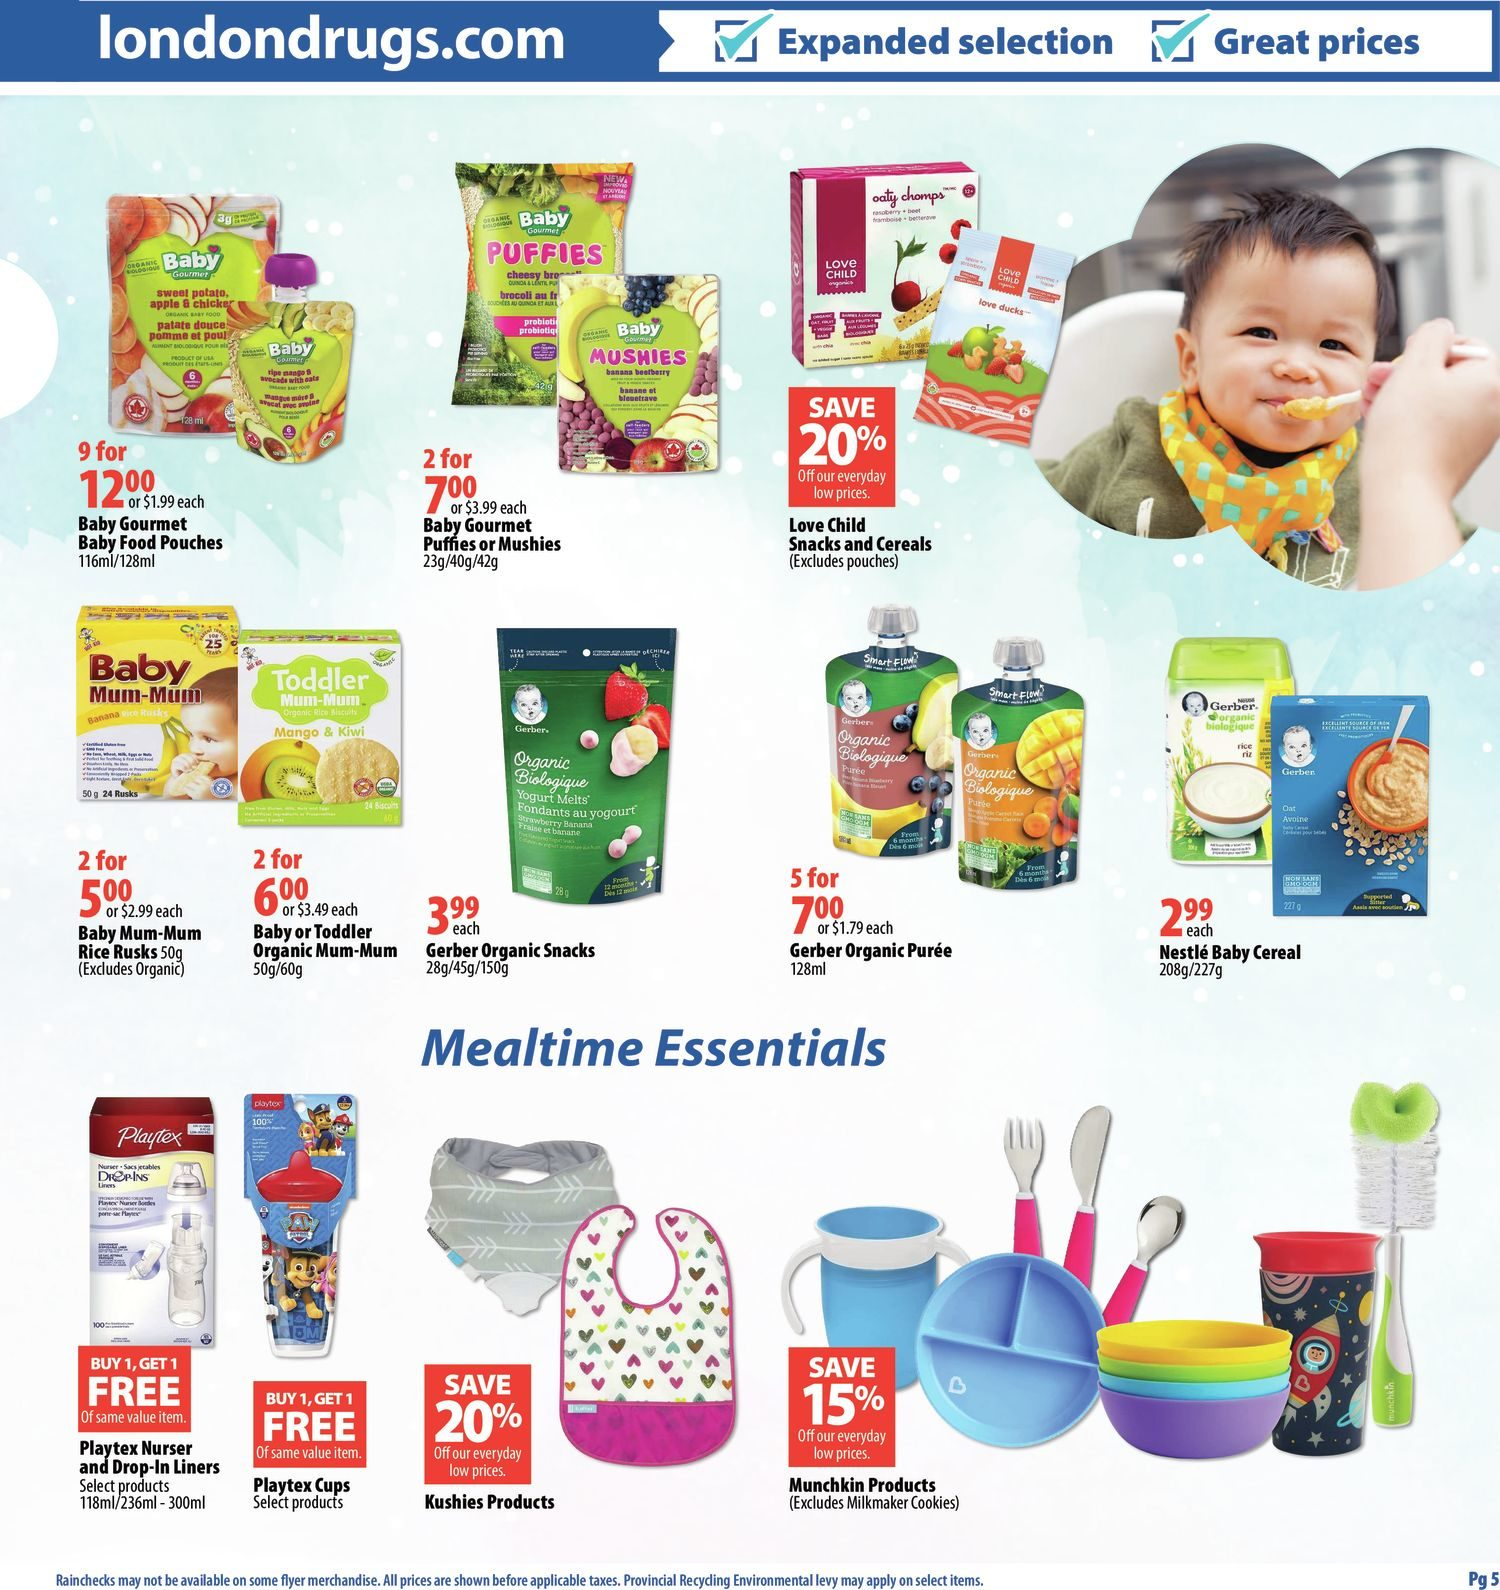 London Drugs - Baby Savings Event - Page 5